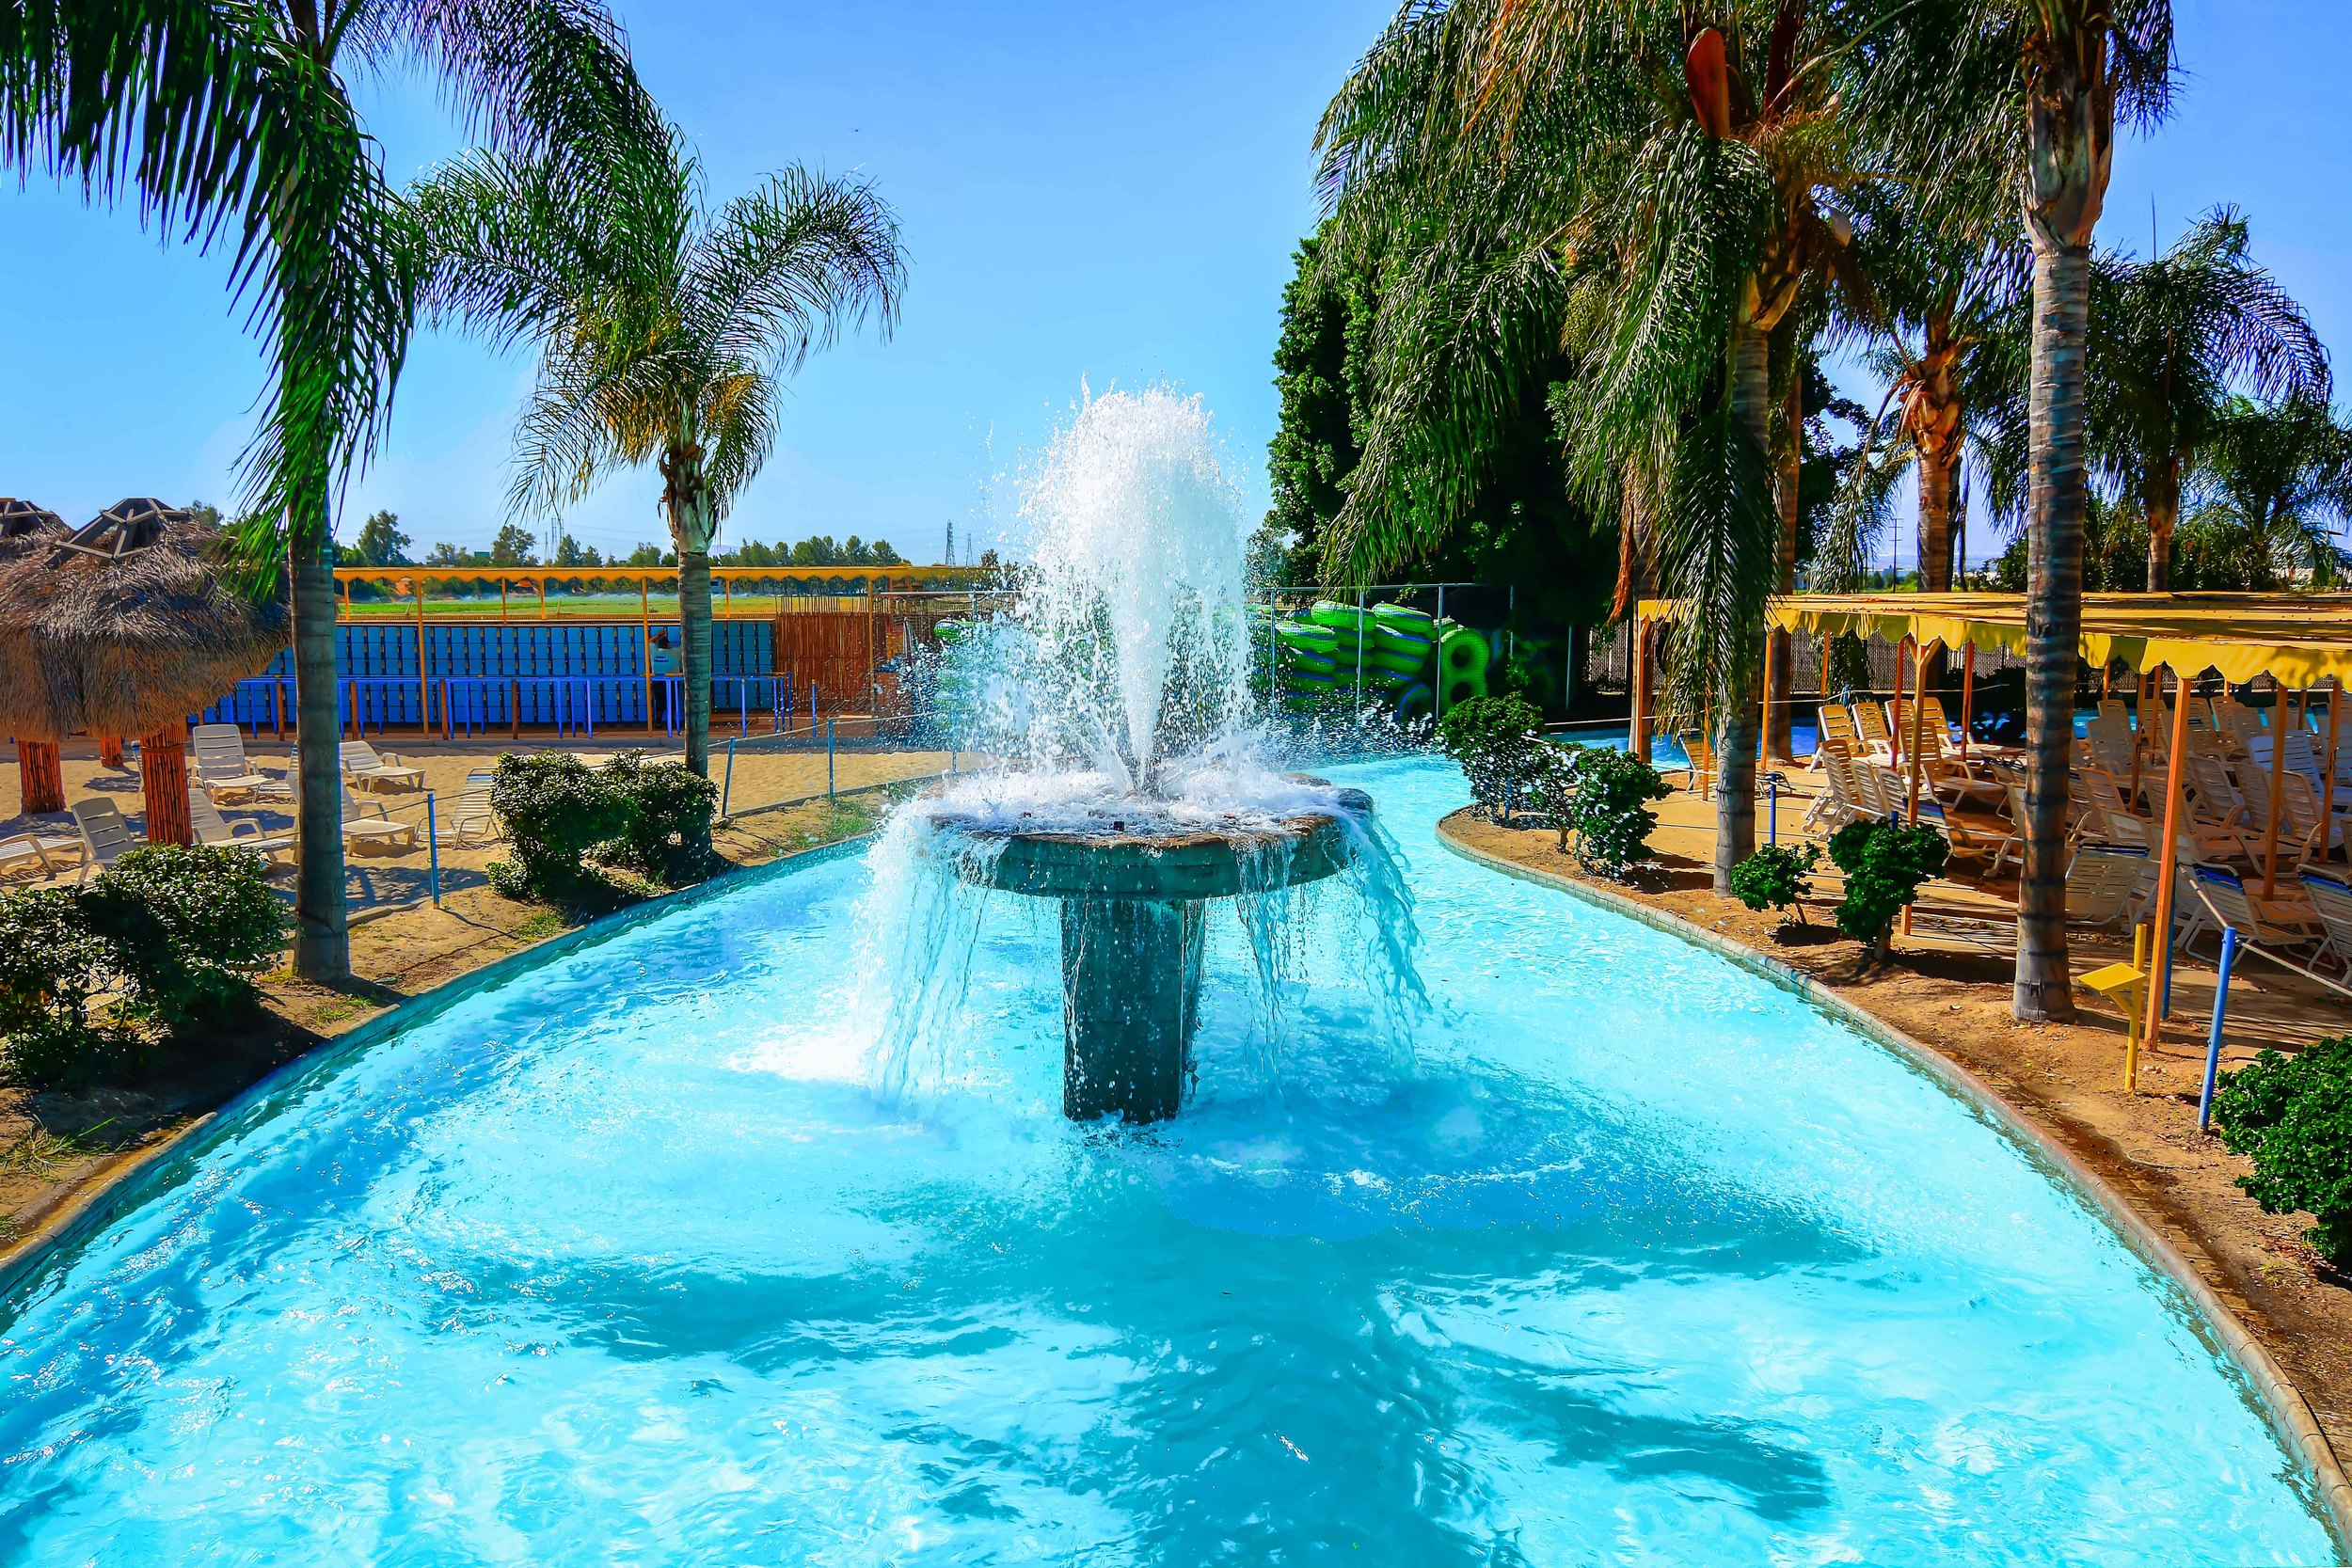 A quarter-mile of sheer relaxation awaits you and the family in The Nile River. Try keeping count of how many times you make it around -- its harder than it sounds!